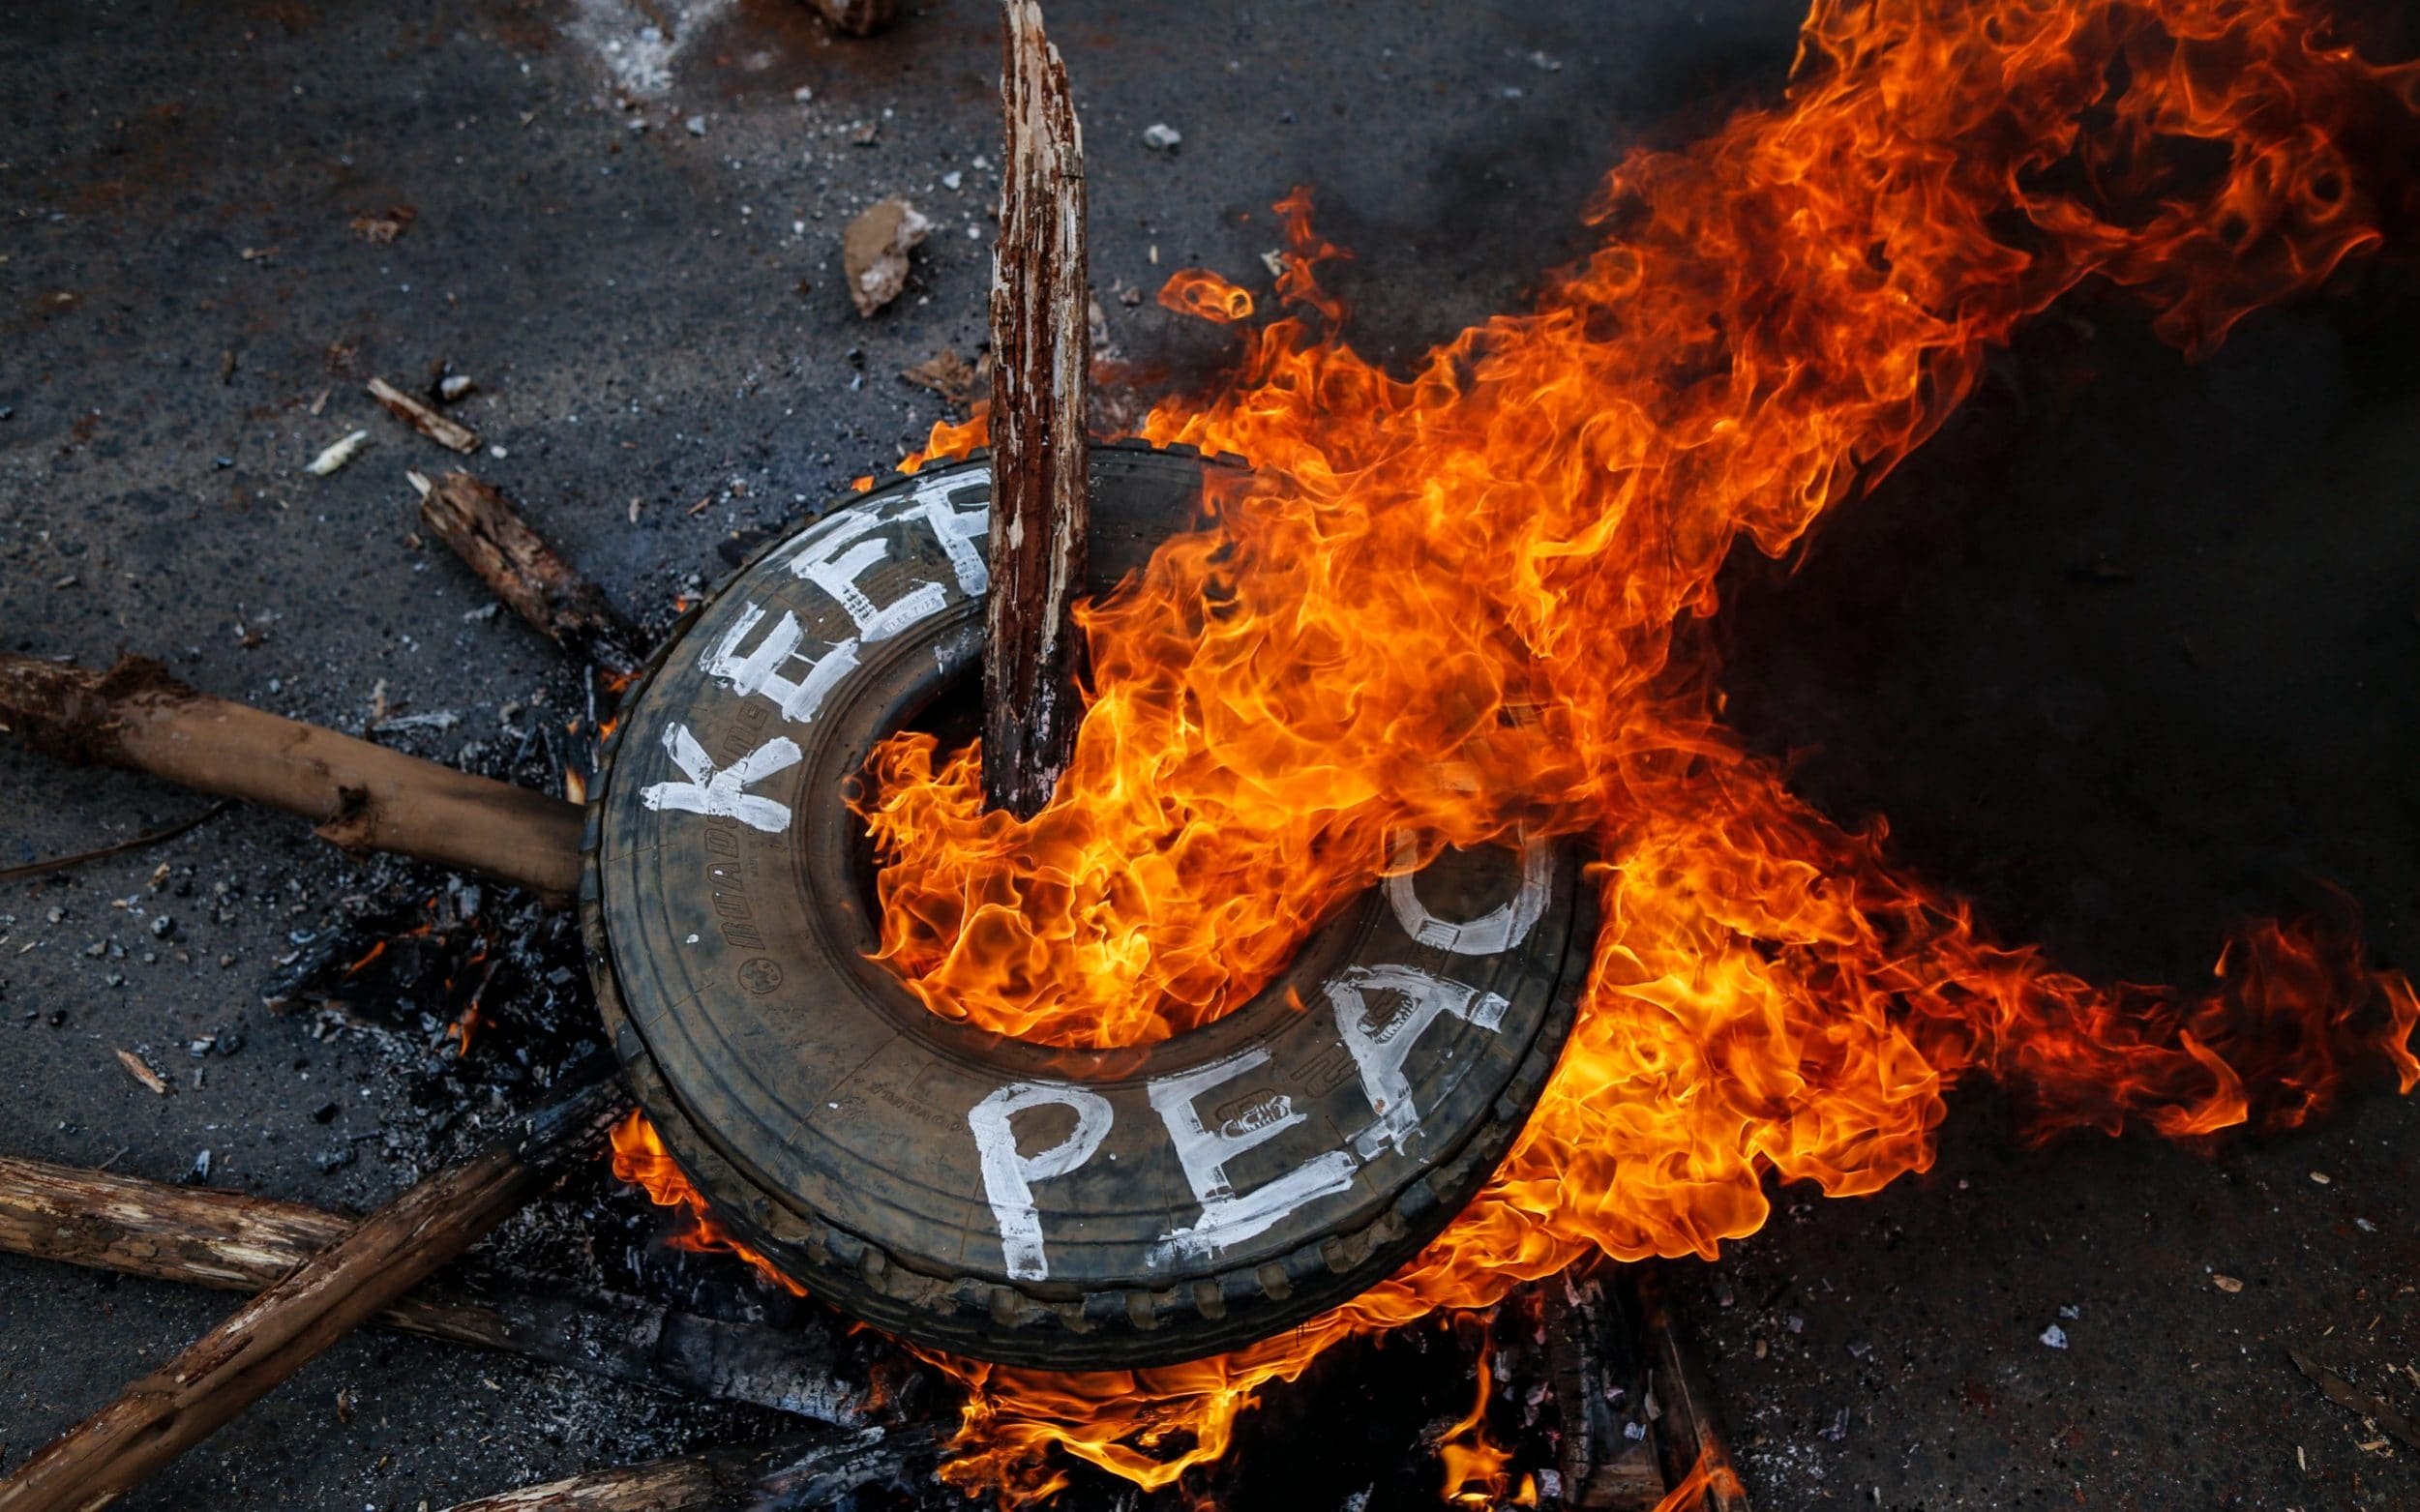 Supporters of the opposition leader Raila Odinga burn a tyre